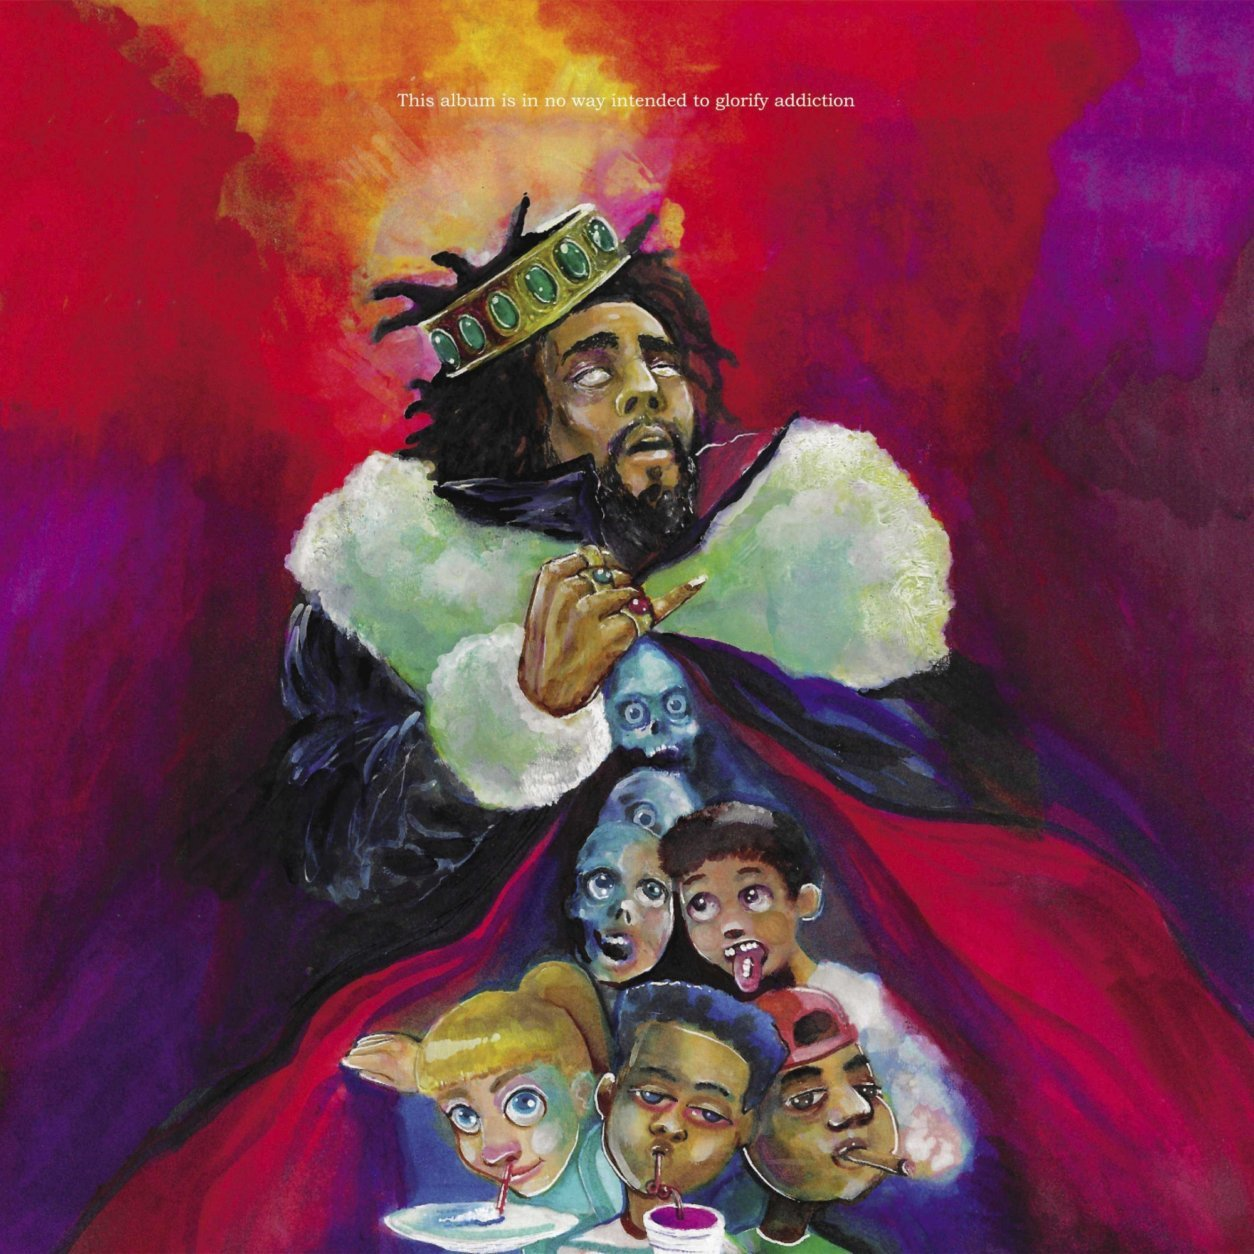 """This cover image released by Dreamville/Roc Nation/Interscope Records shows """"KOD,"""" by J. Cole, named one of the top albums of the year.  (Dreamville/Roc Nation/Interscope Records via AP)"""